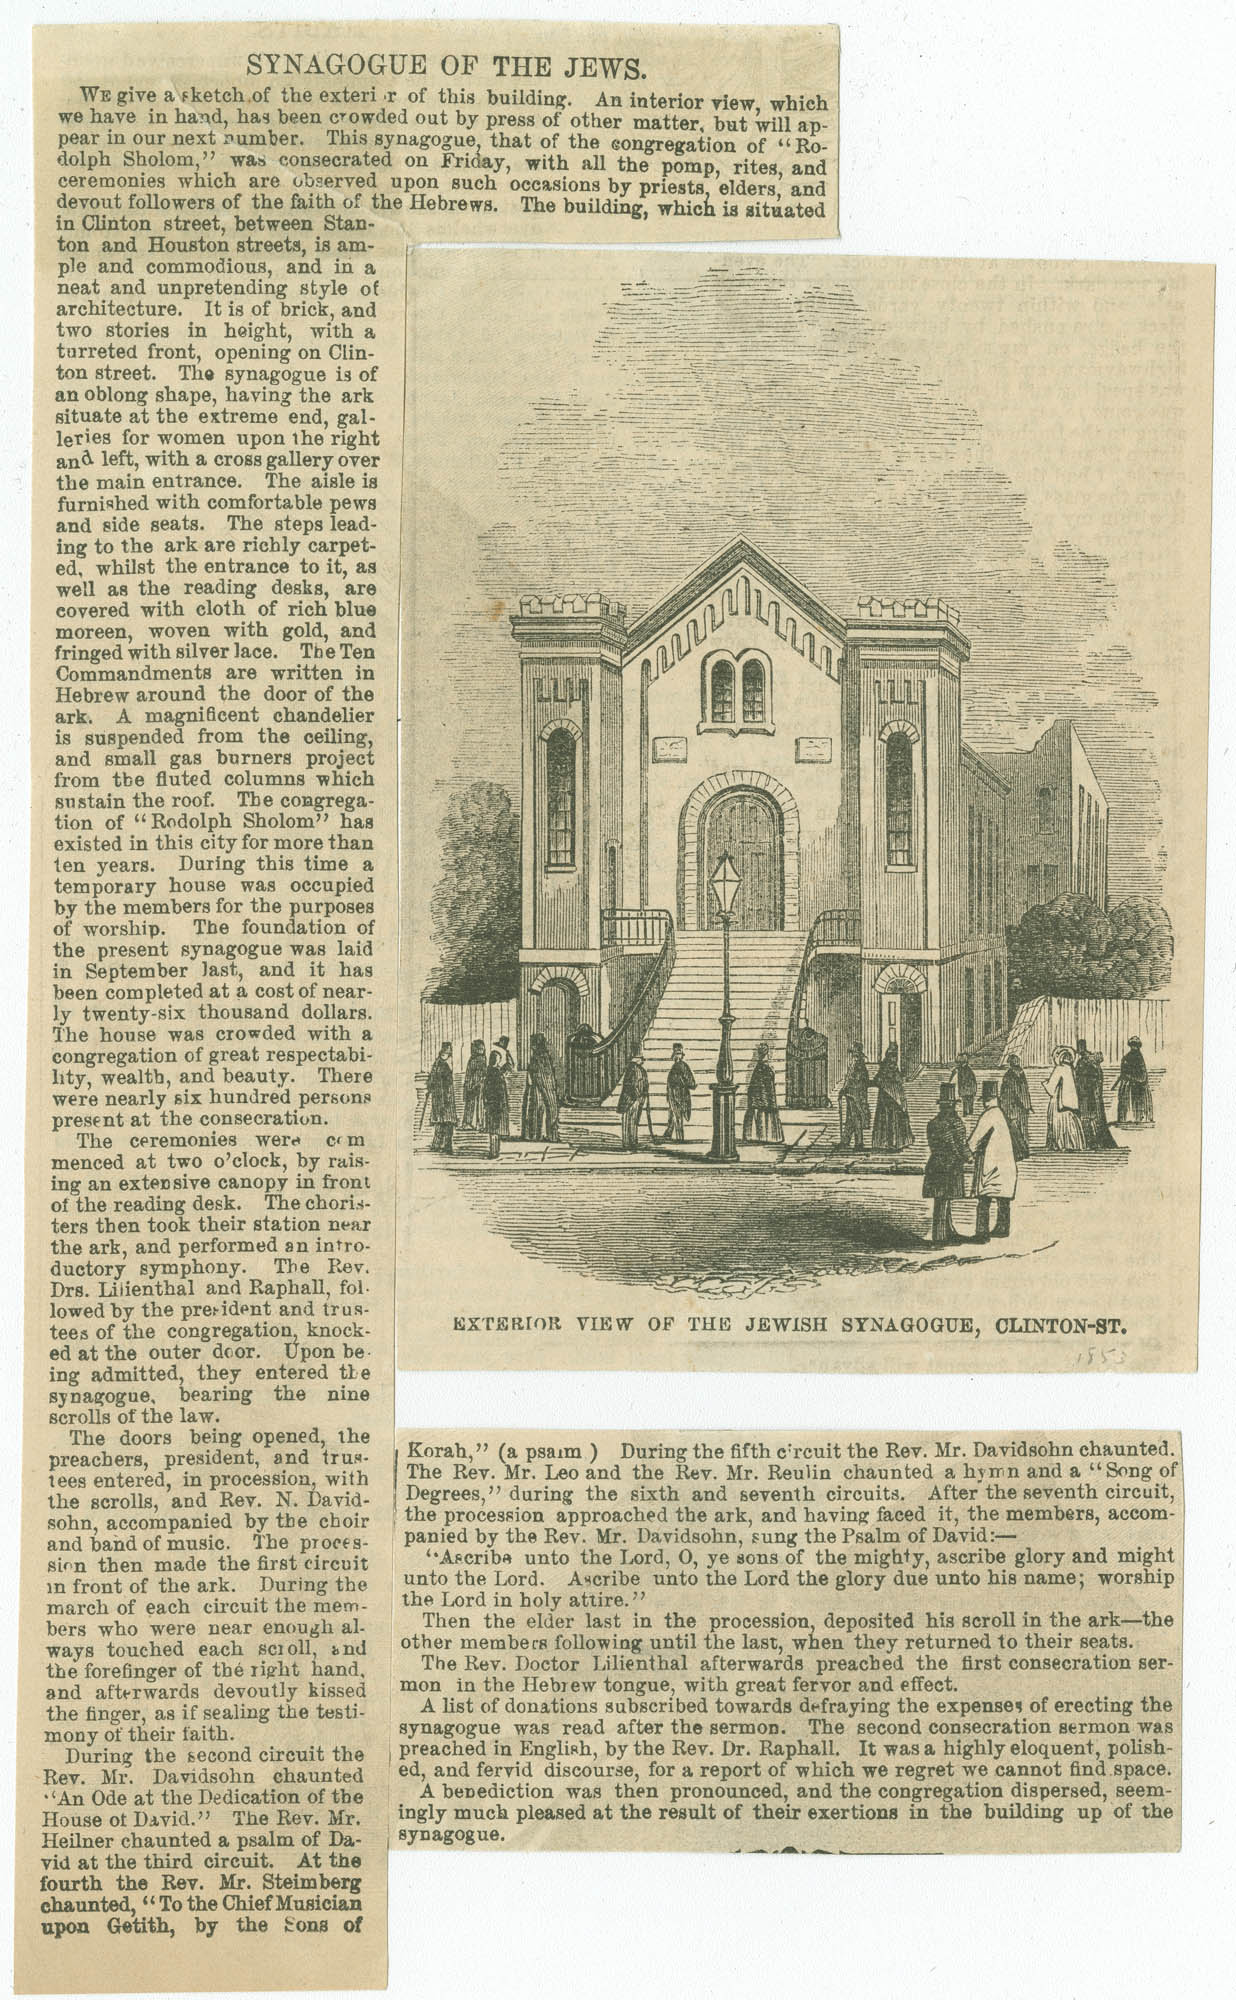 Exterior view of the Jewish Synagogue, Clinton St.